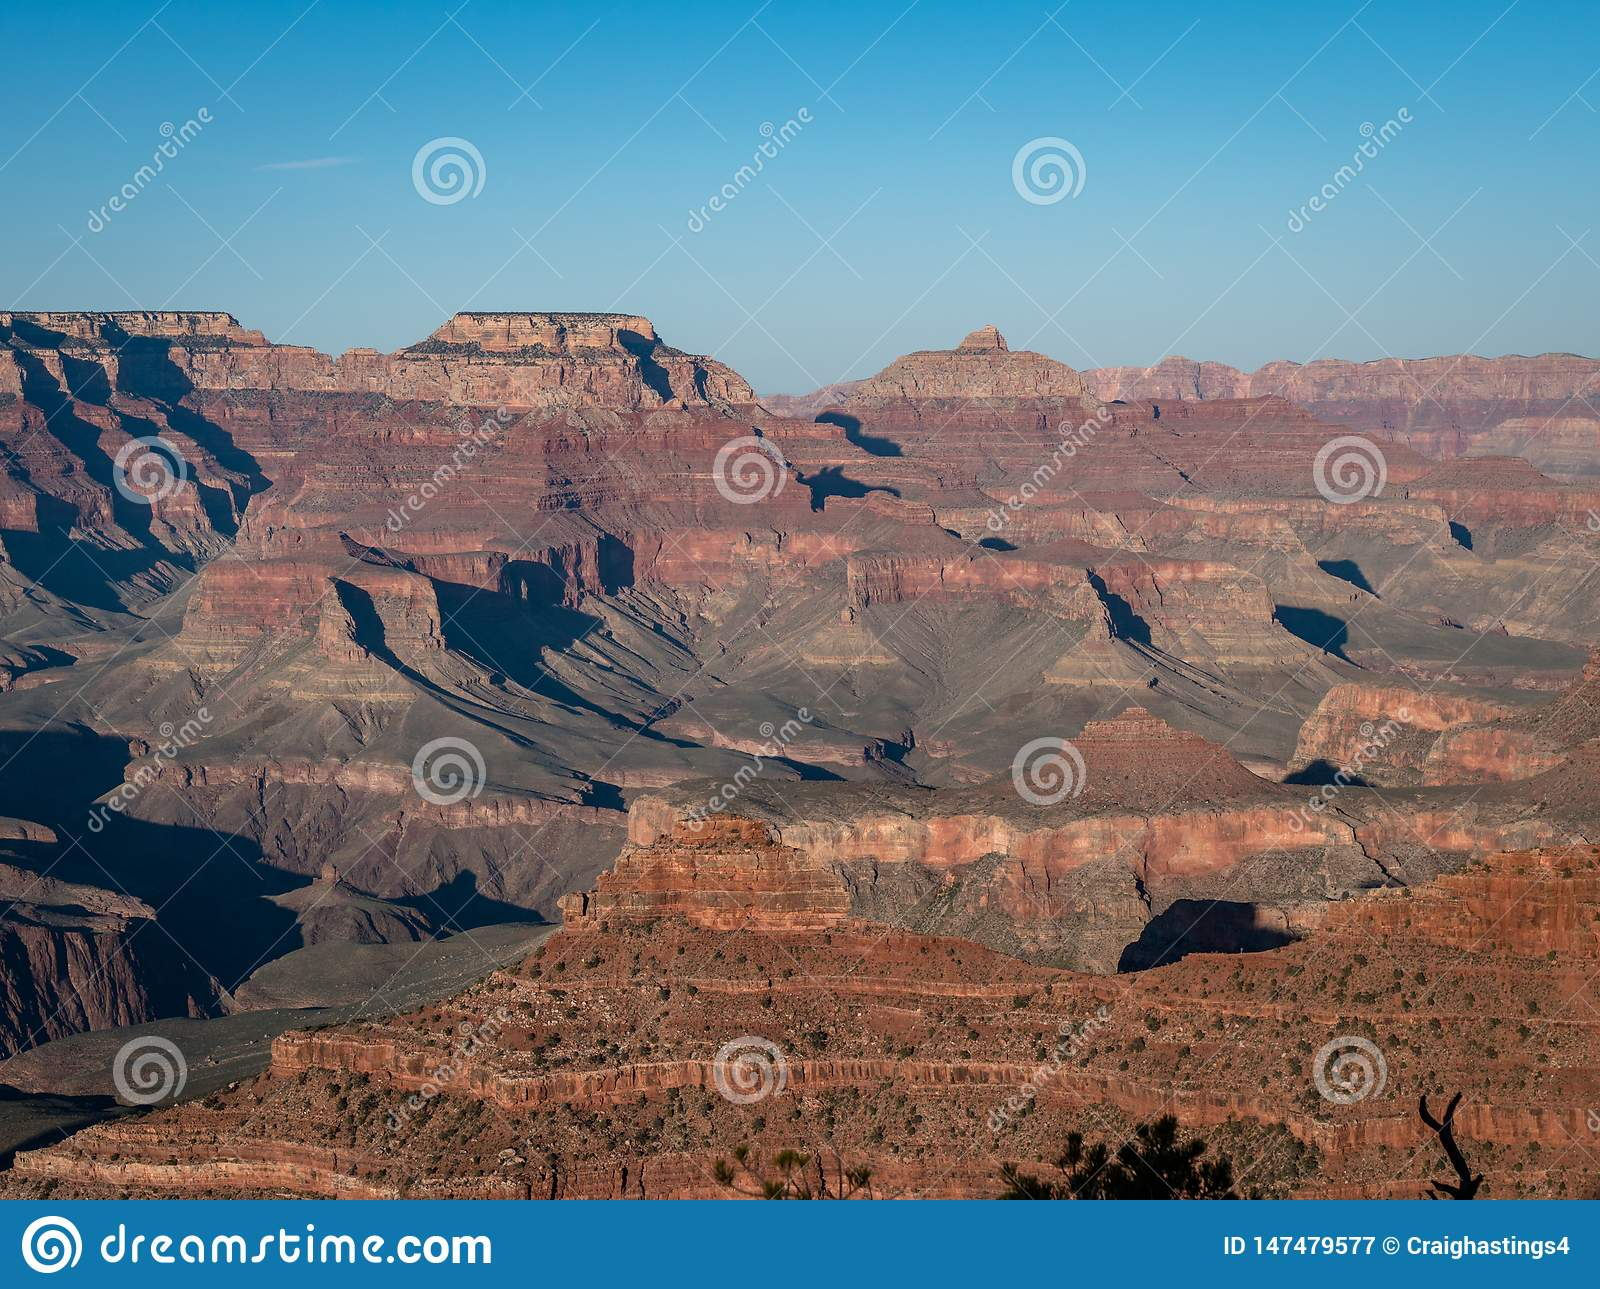 Scenic view of the Grand Canyon from the Grand Canyon Village south side